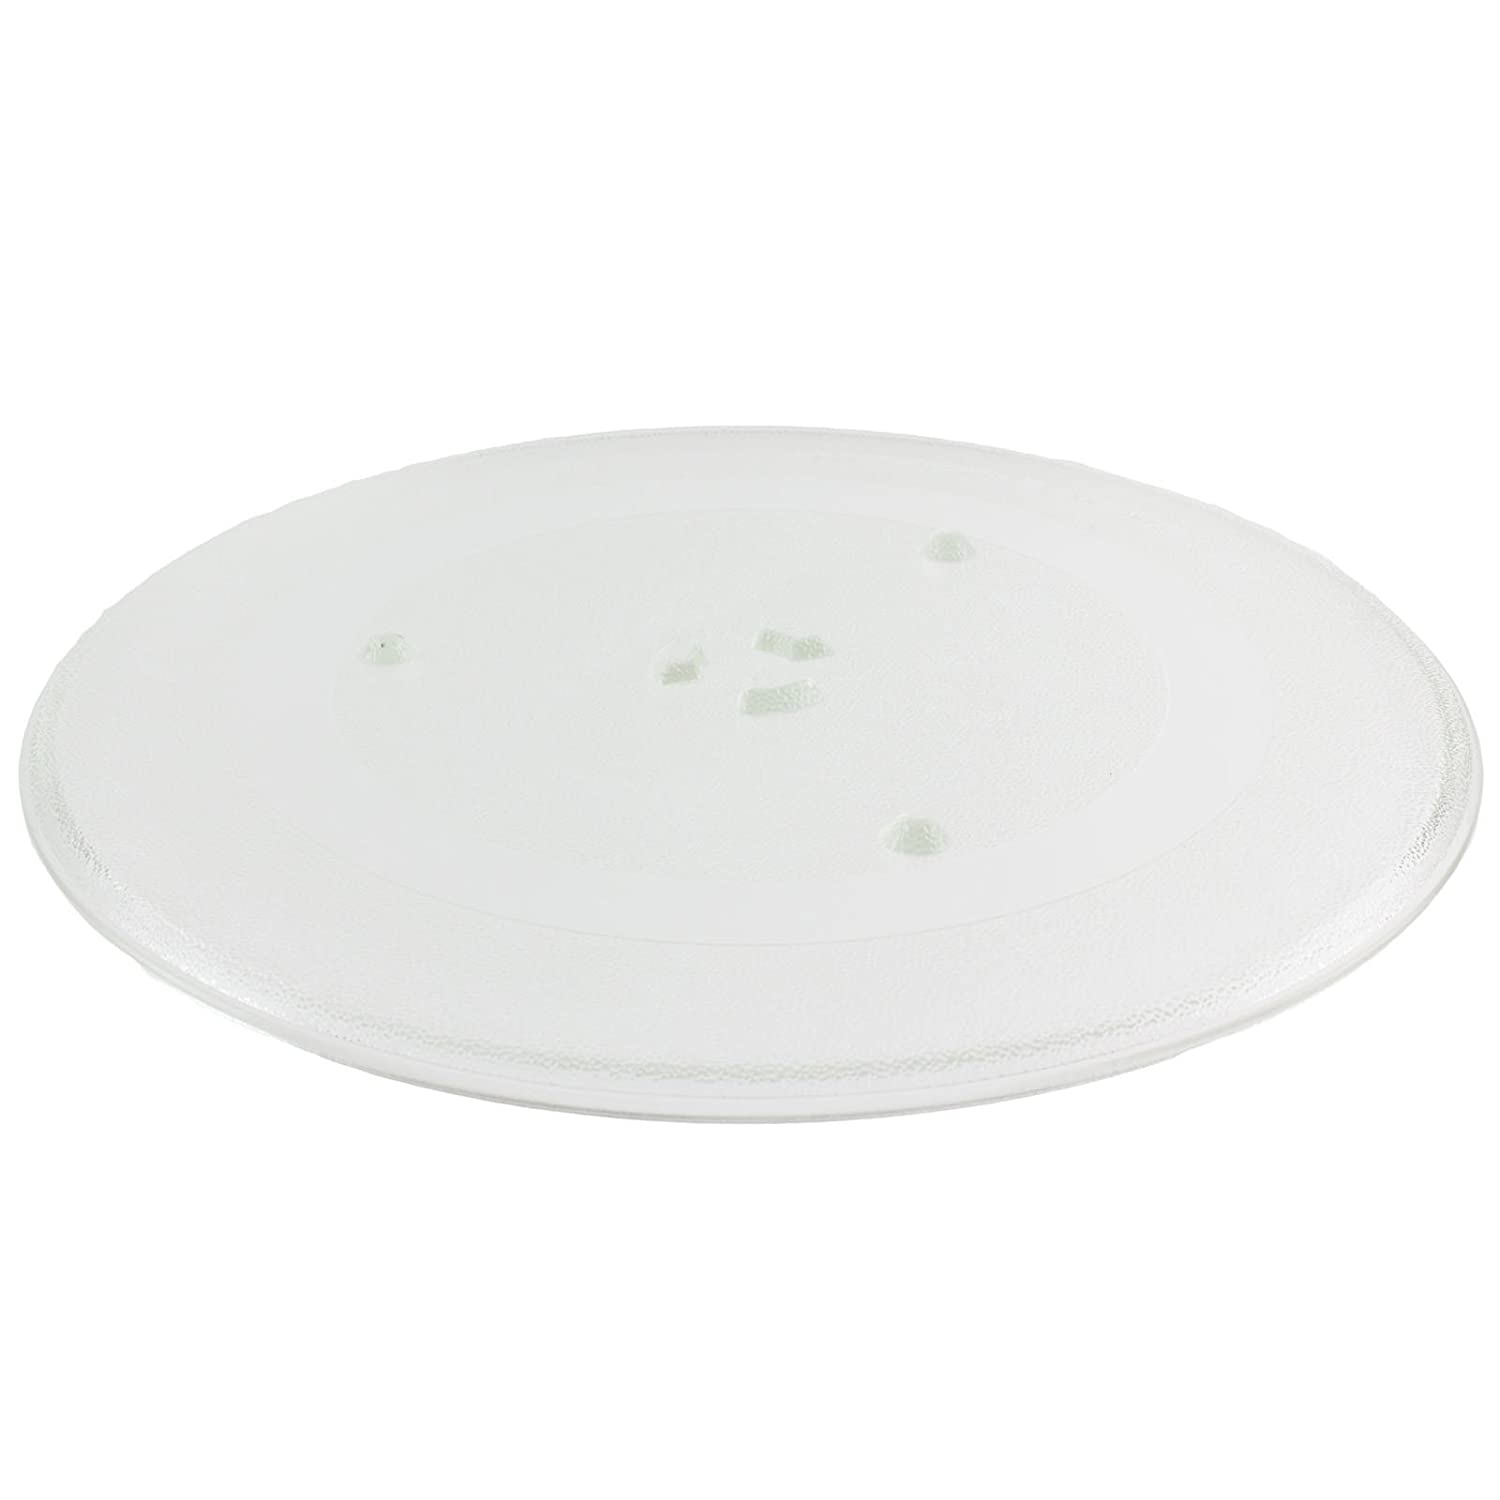 360/ mm//35,6/ cm V/éritable Samsung micro-ondes Turntable plaque de verre